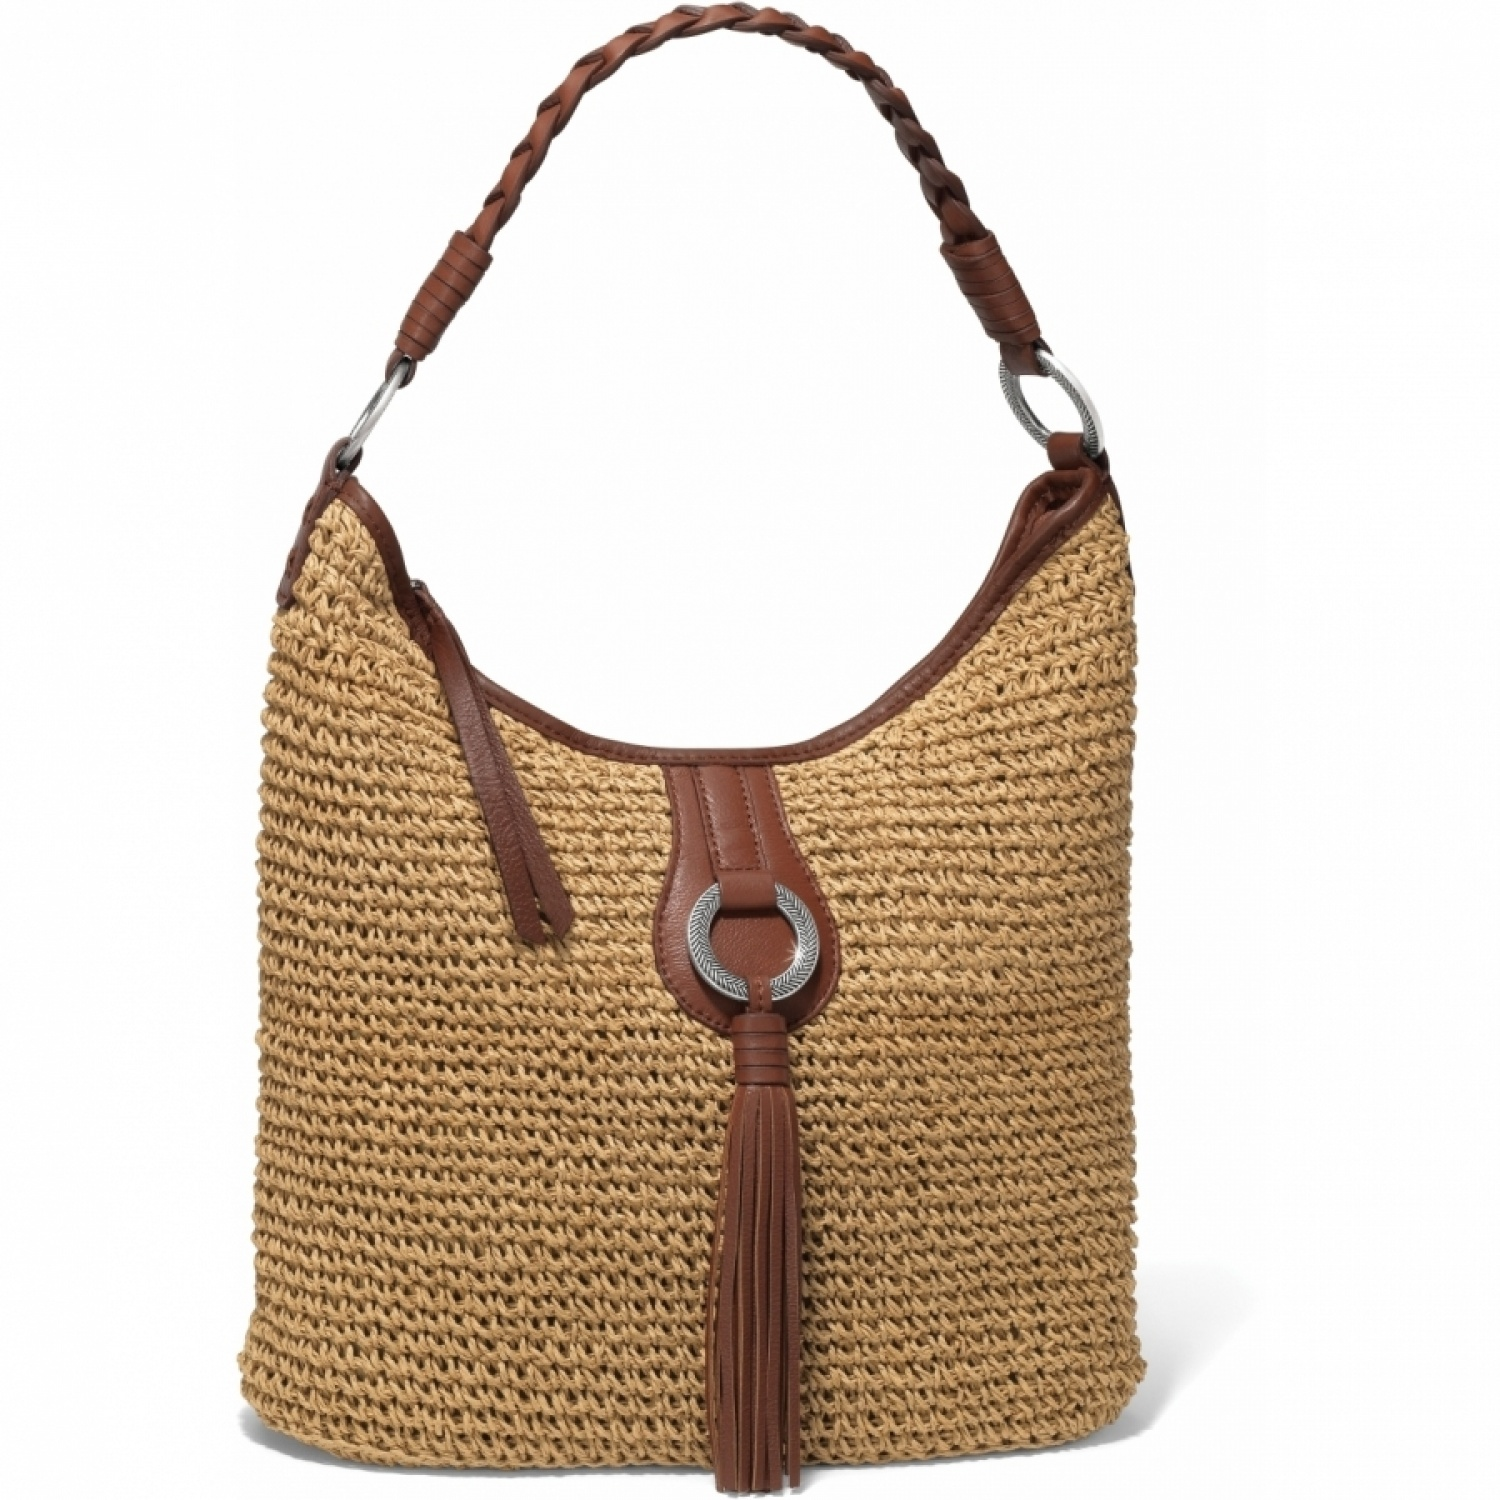 Leather Hobo Bags & Handbags - True Designer Style | Brighton ...